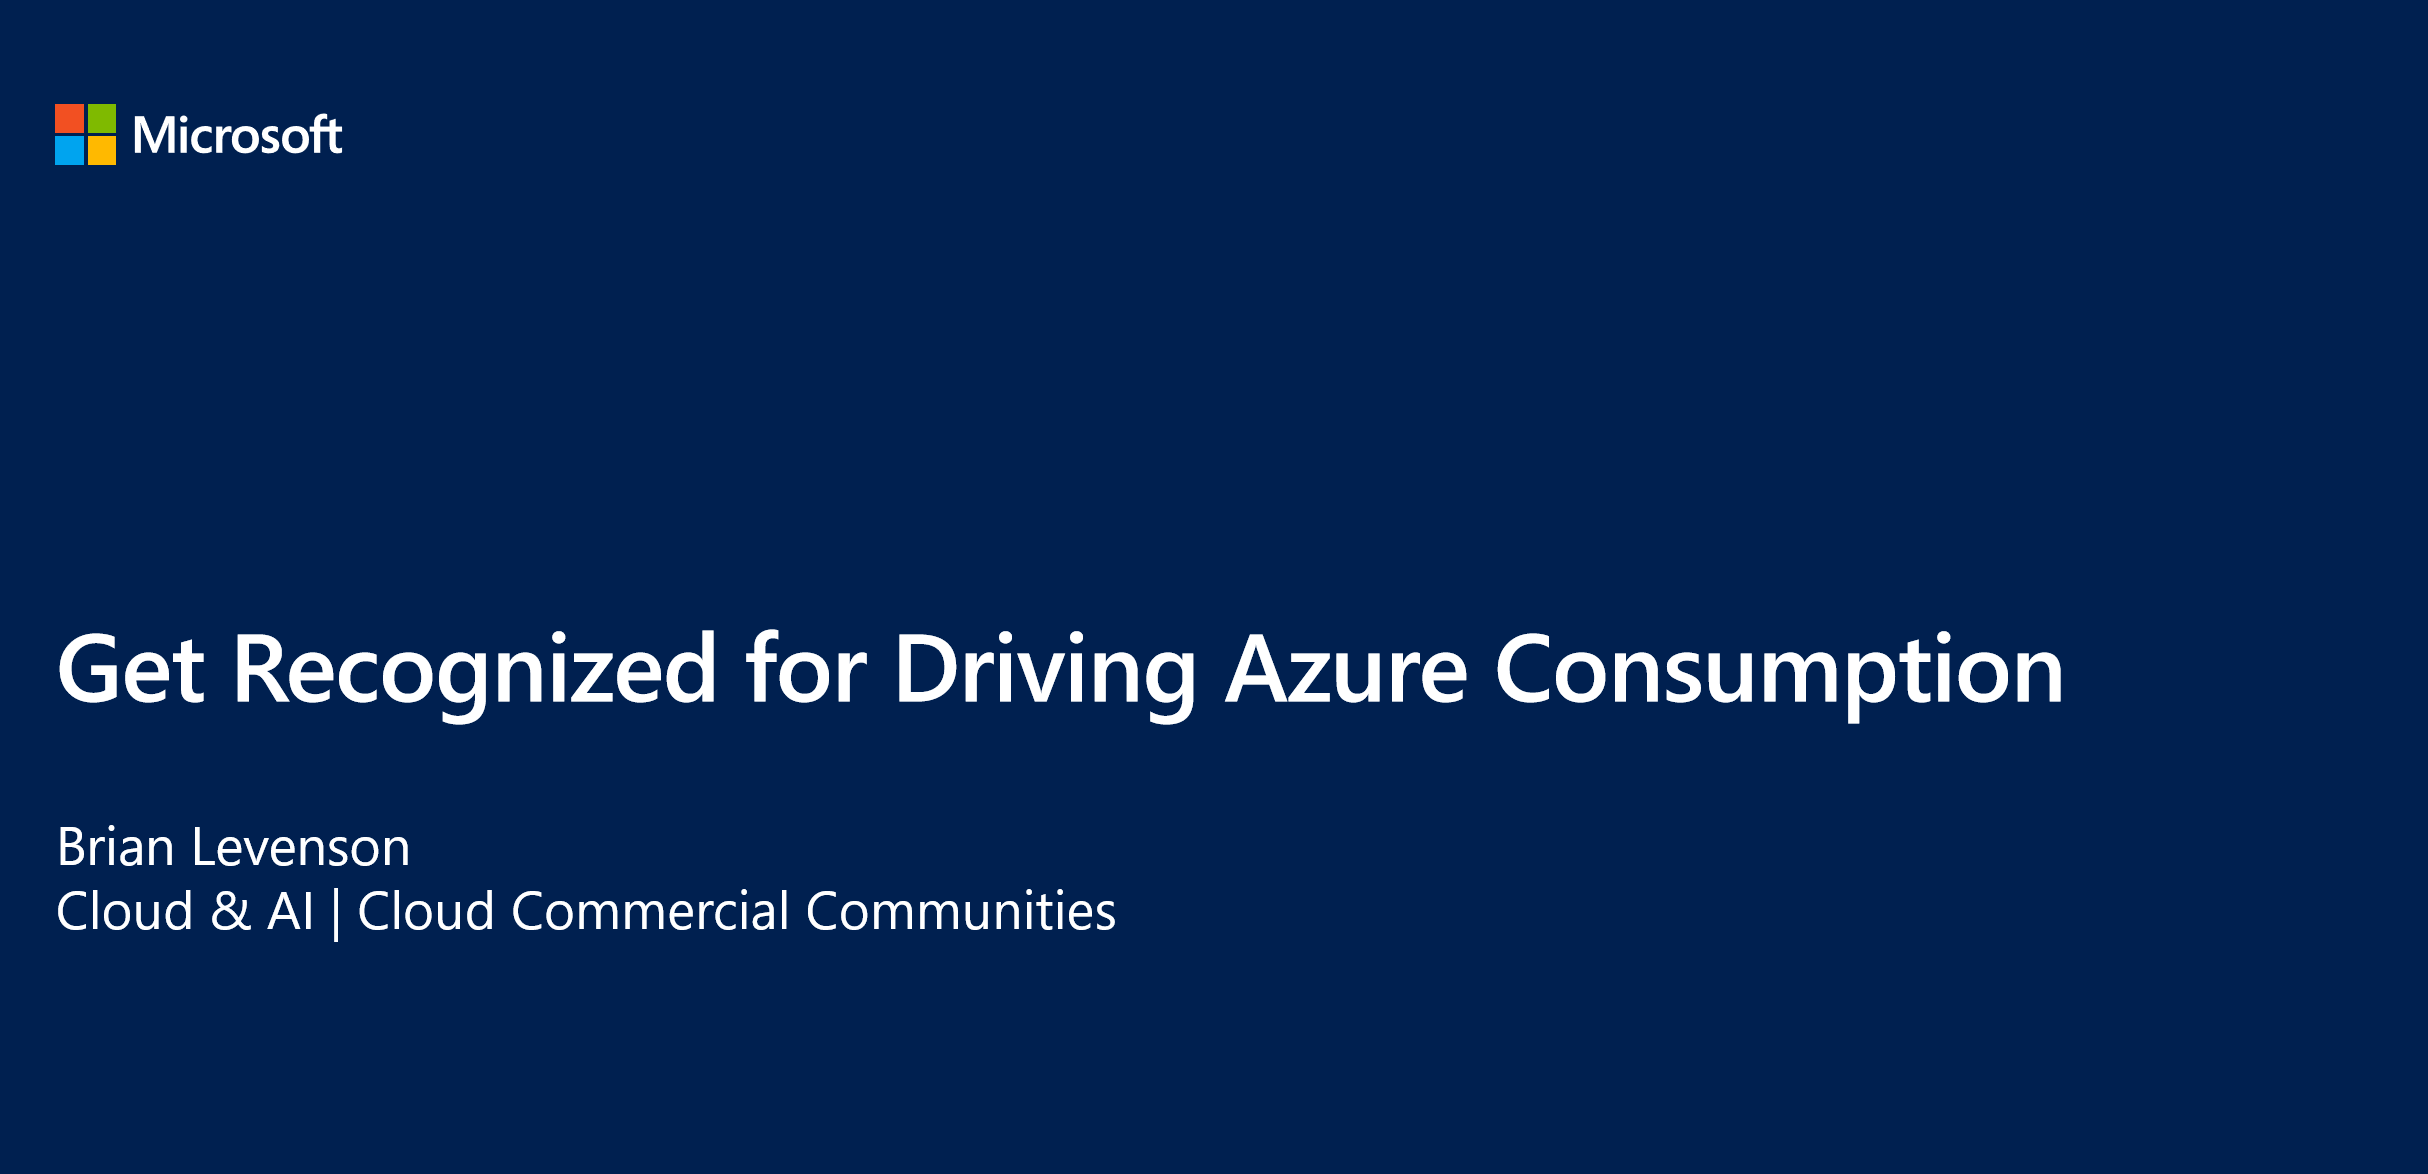 Get Recognized for Driving Azure Consumption